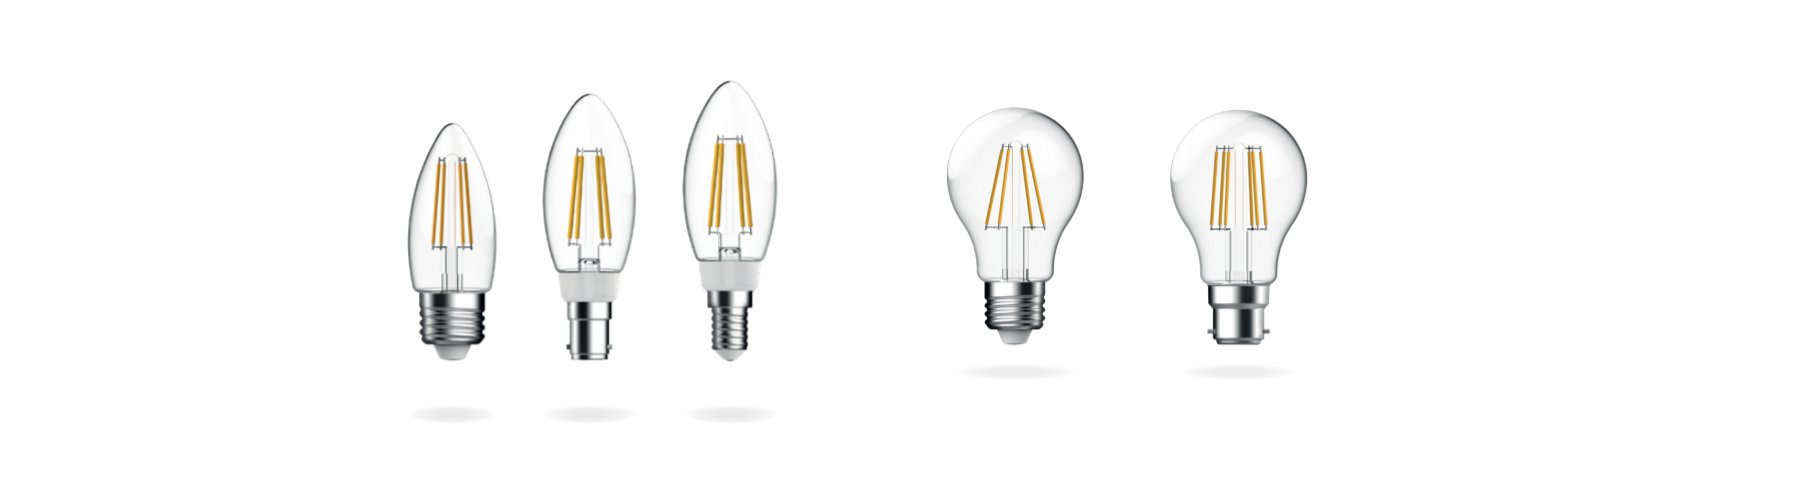 Lighting store LED Light bulb